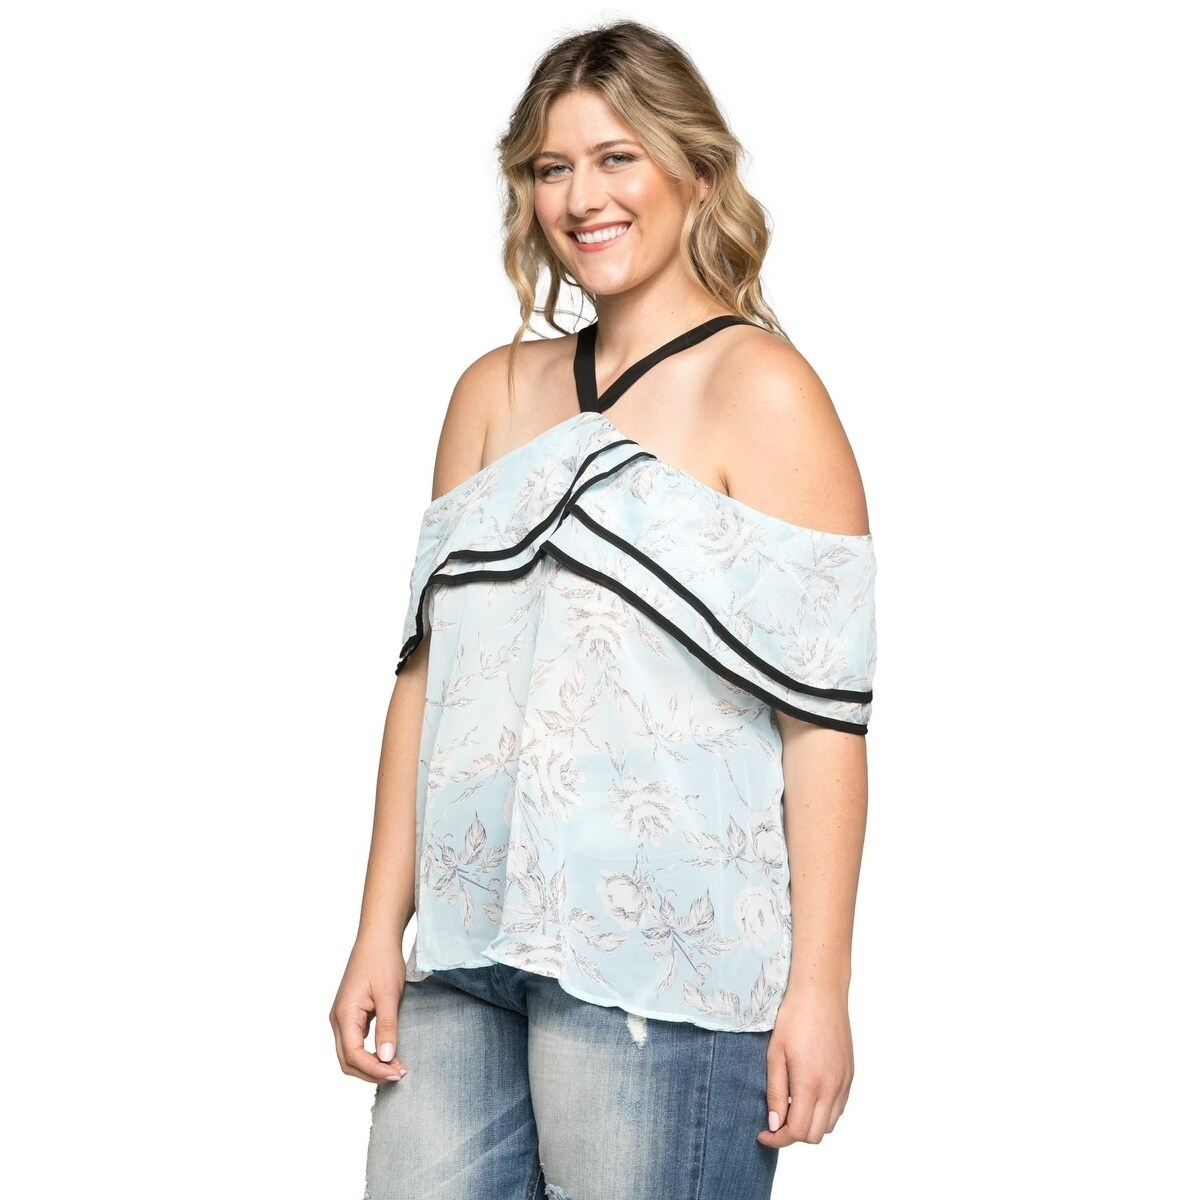 d6238b3522f Shop Xehar Women s Plus Size Sexy Floral Halter Ruffle Blouse Top - Free  Shipping On Orders Over  45 - Overstock - 20529682